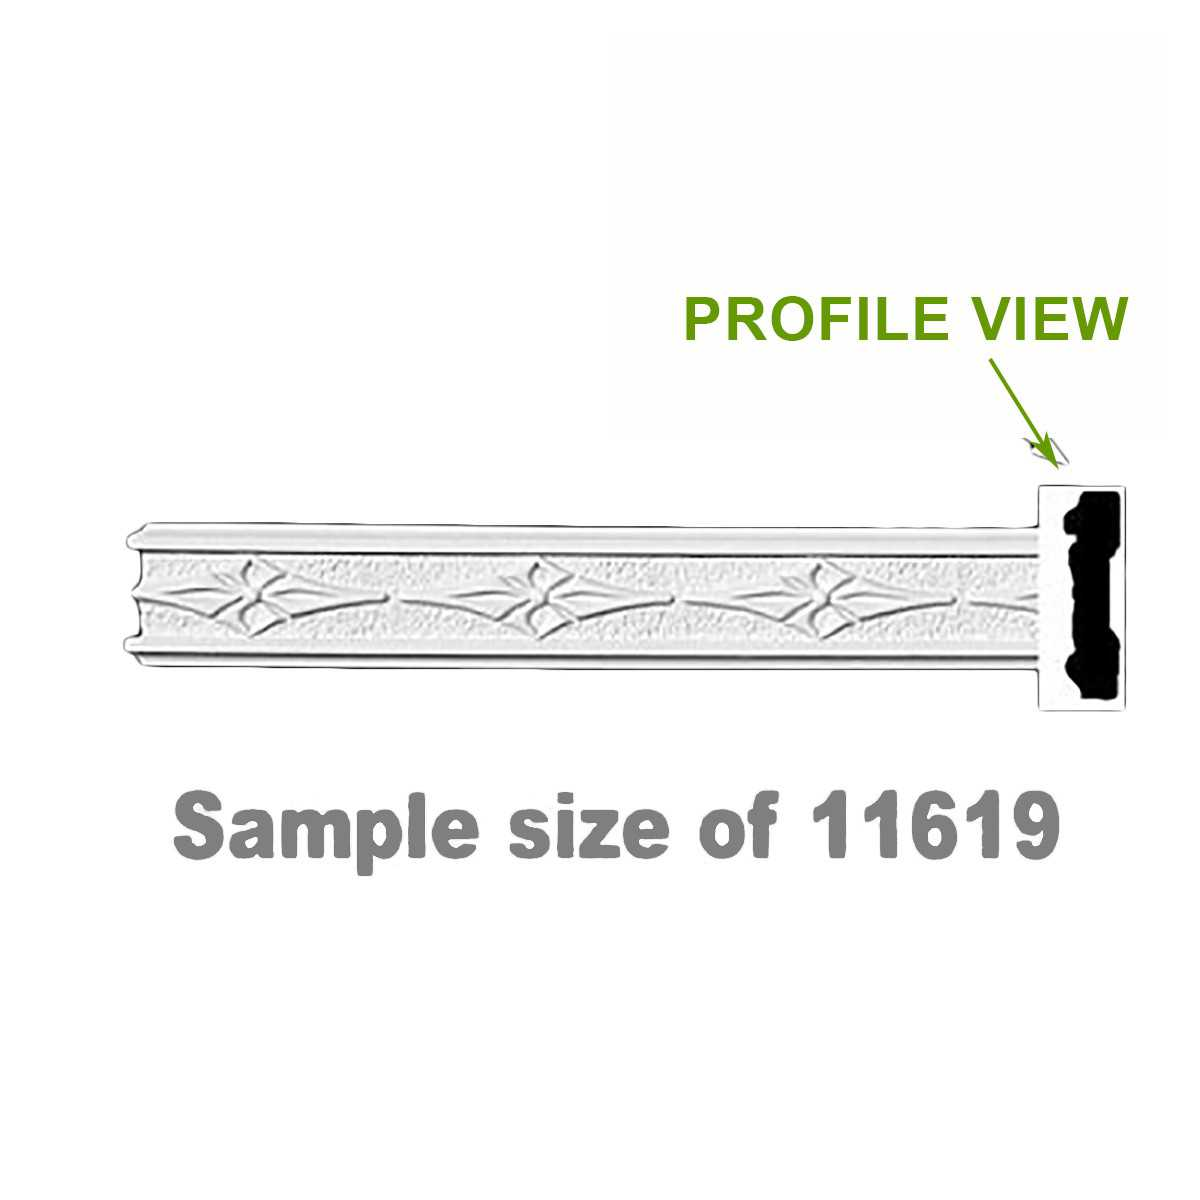 Cornice White Urethane 24' Sample of 11619 | Renovator's Supply